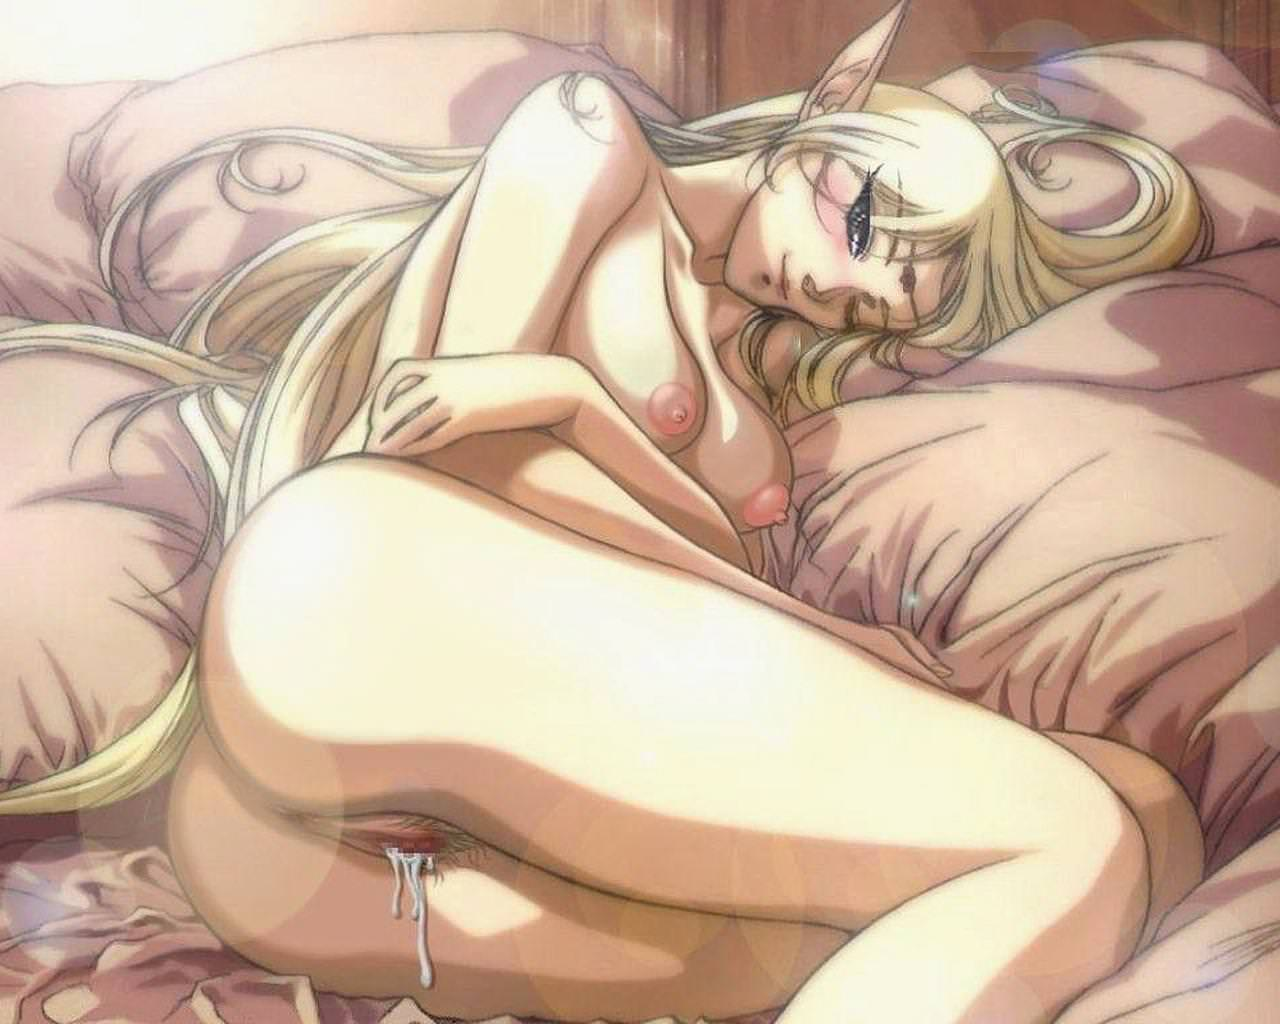 Sexy elf nude anime adult scenes